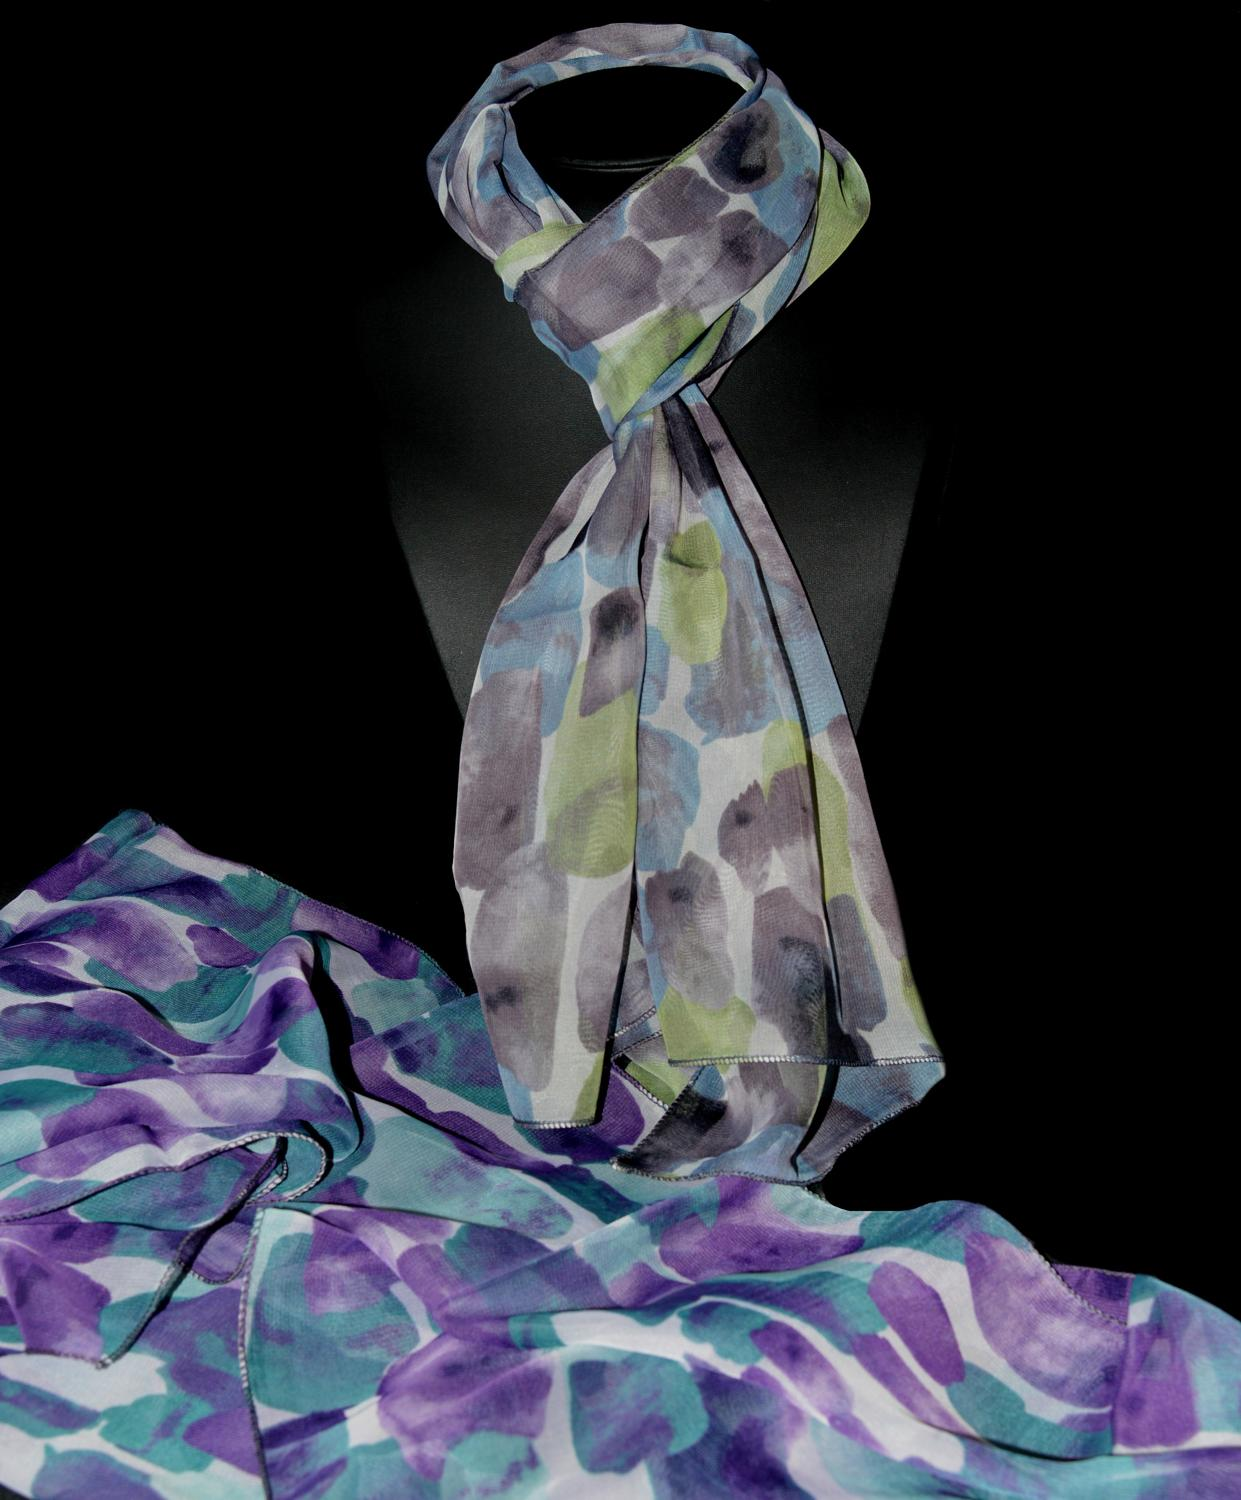 Watercolor Effect Chiffon Scarf